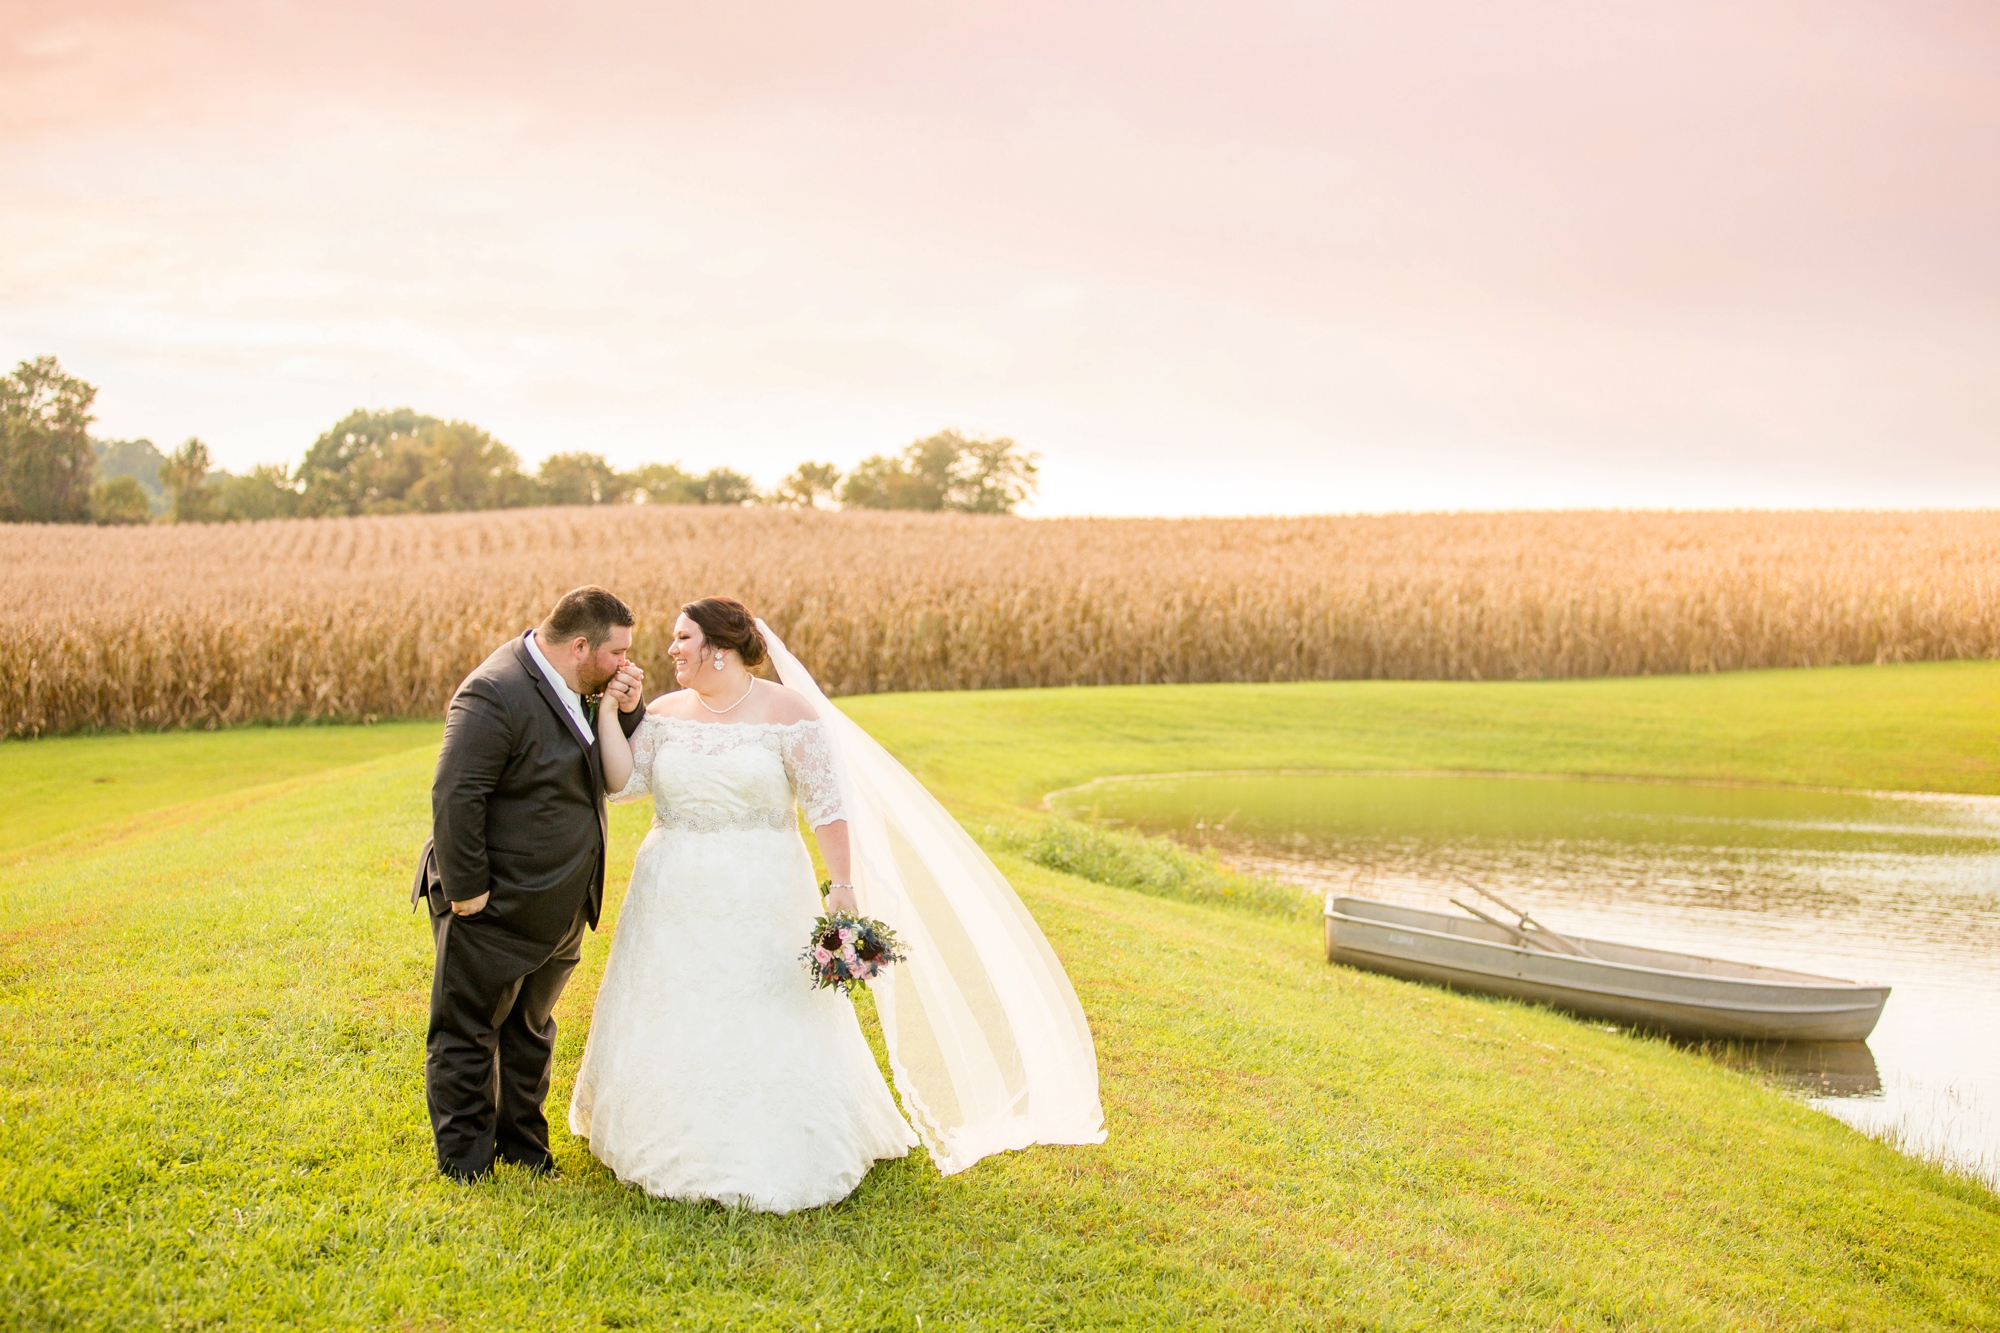 pittsburgh wedding photographer, pittsburgh wedding venues, pittsburgh wedding photos, white barn wedding photos propsect pa